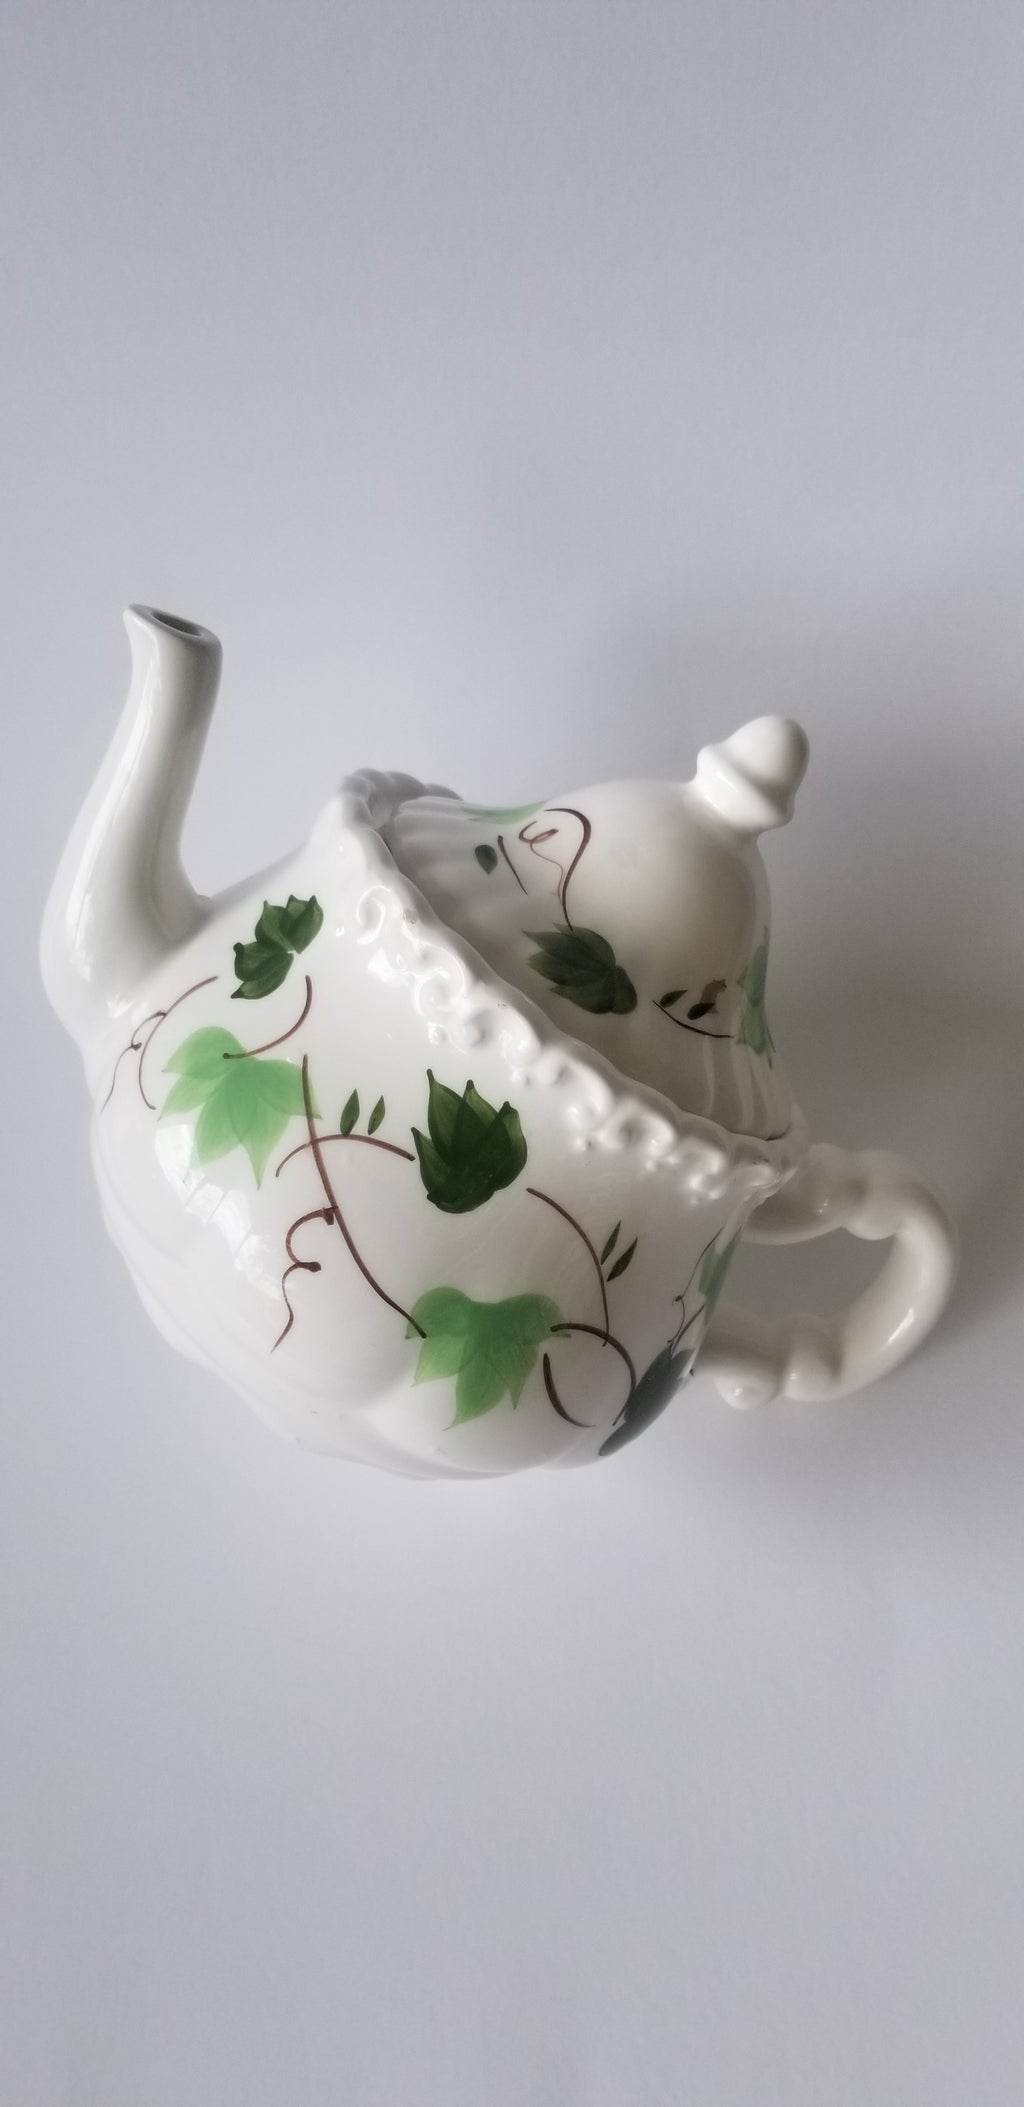 Cardinal Inc. teapot ceramic white with green ivy 1992